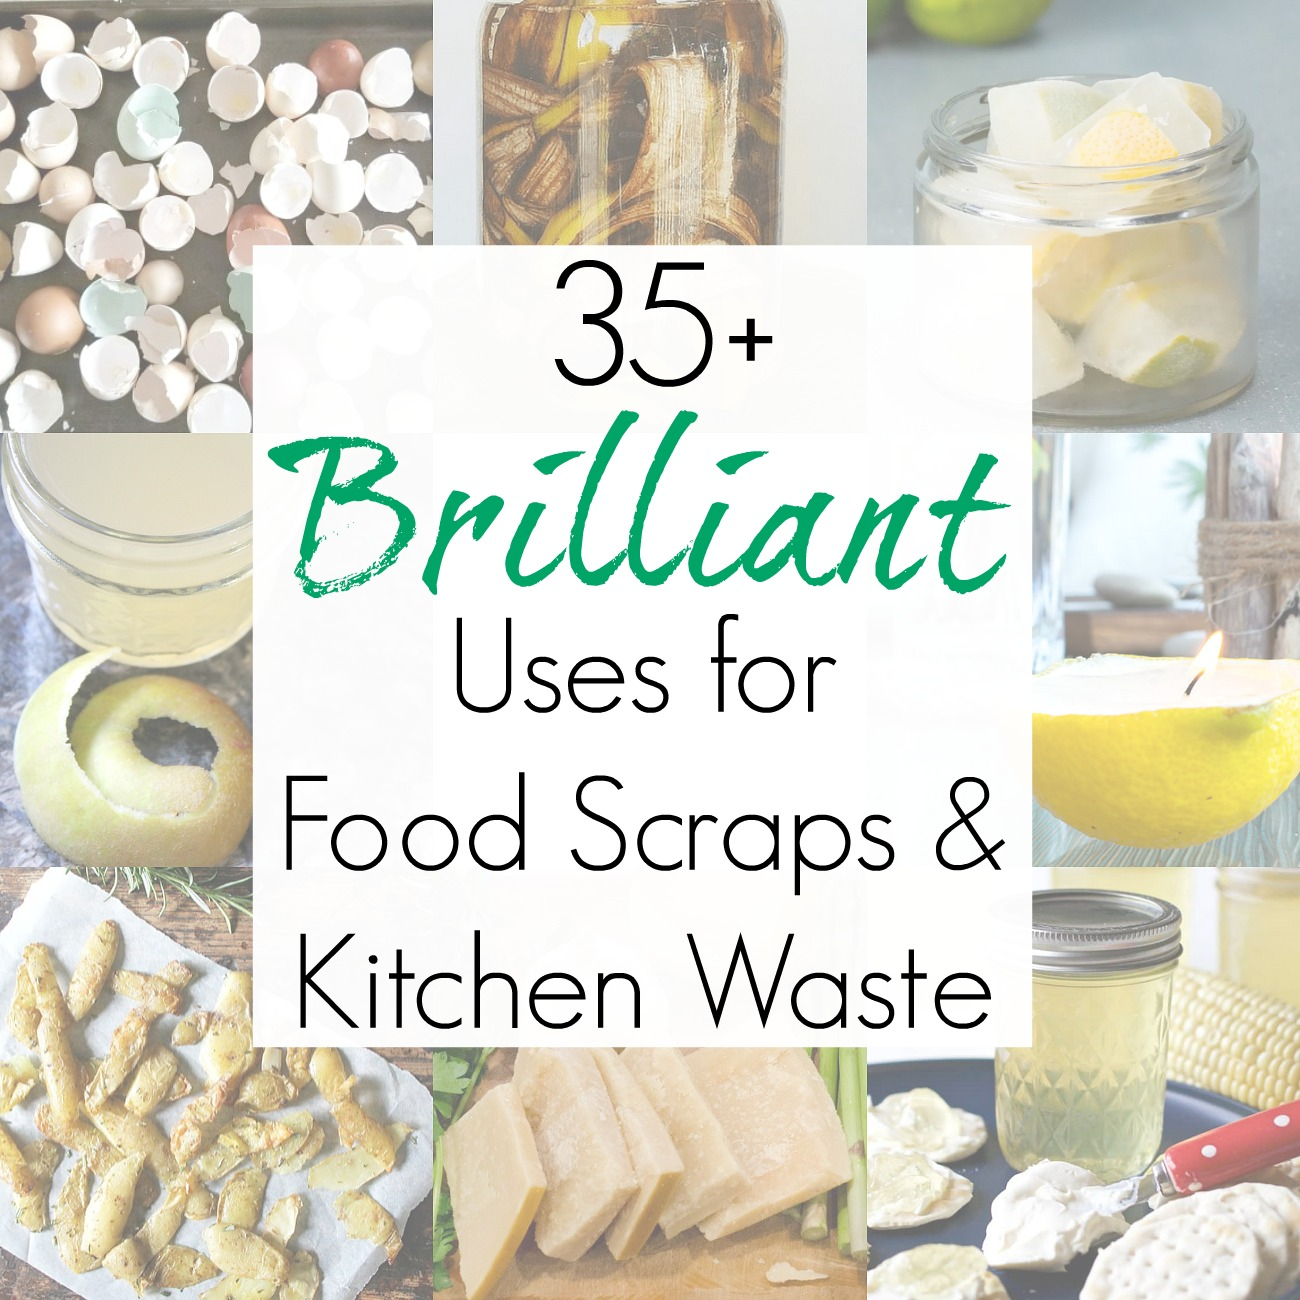 35+ Food Waste Solutions for Food Scraps and Kitchen Waste